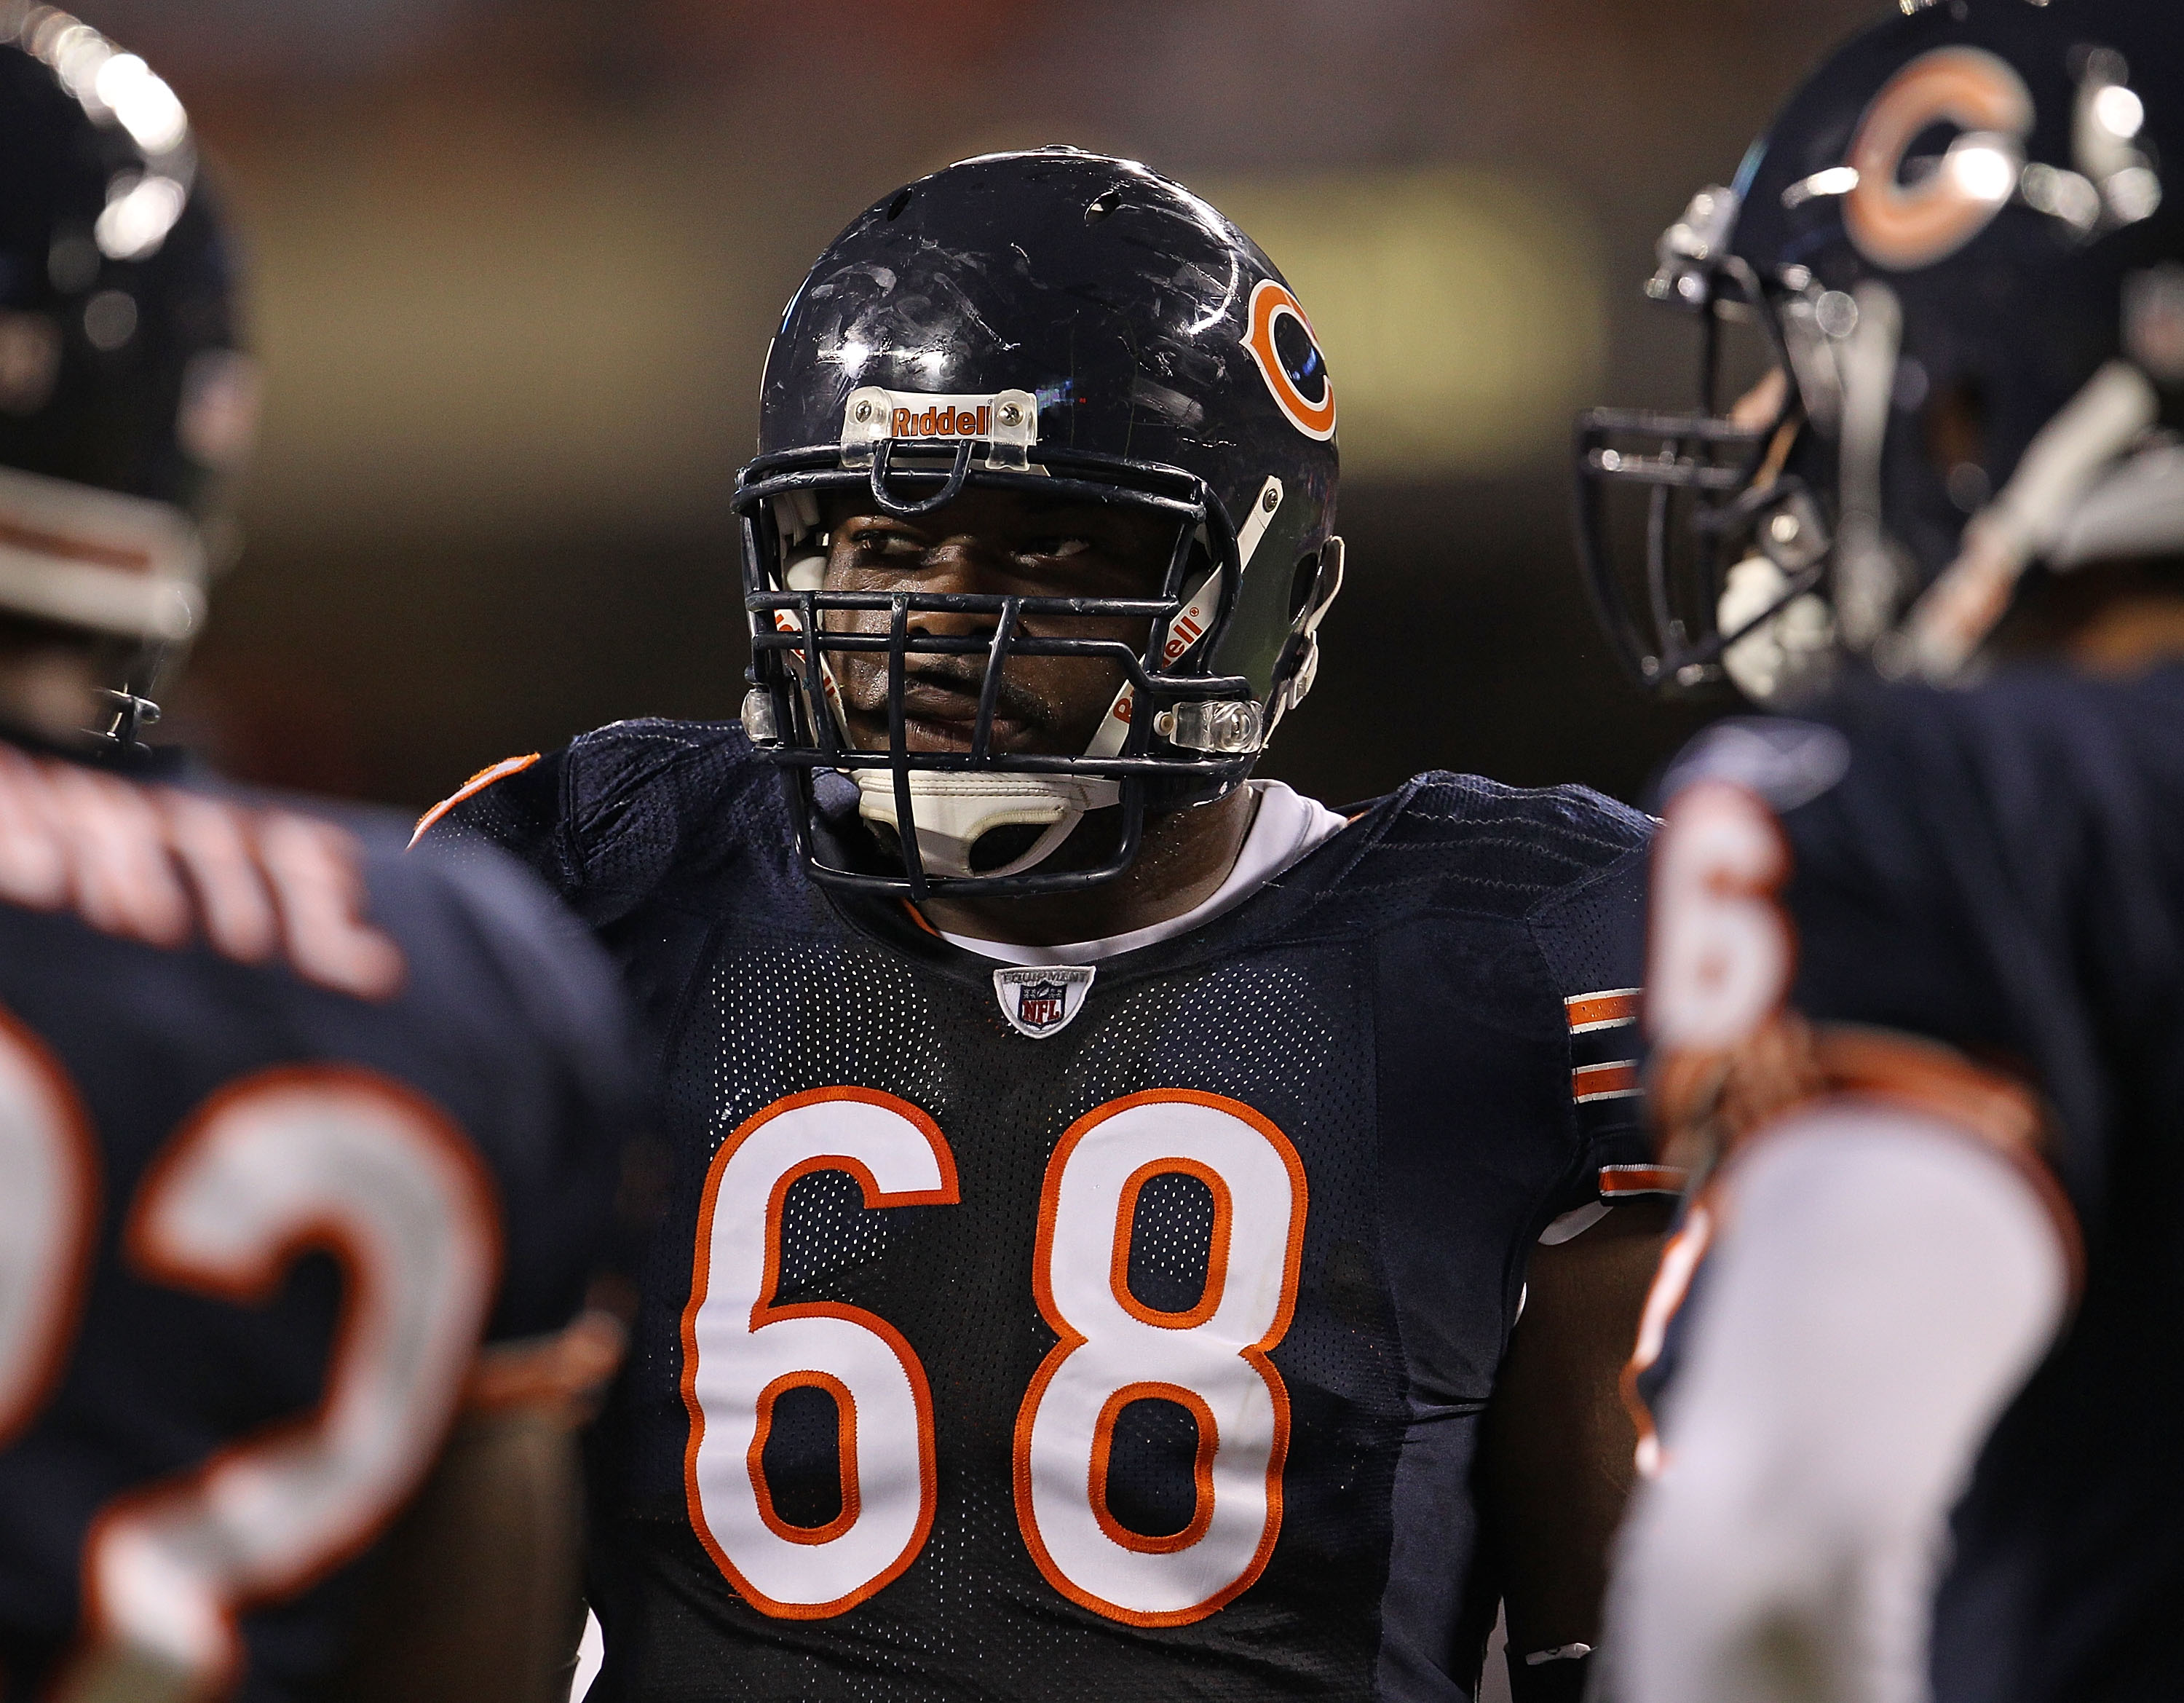 CHICAGO - AUGUST 28: Frank Omiyale #68 of the Chicago Bears waits in the huddle during a preseason game against the Arizona Cardinals at Soldier Field on August 28, 2010 in Chicago, Illinois. The Cardinals defeated the Bears 14-9. (Photo by Jonathan Danie